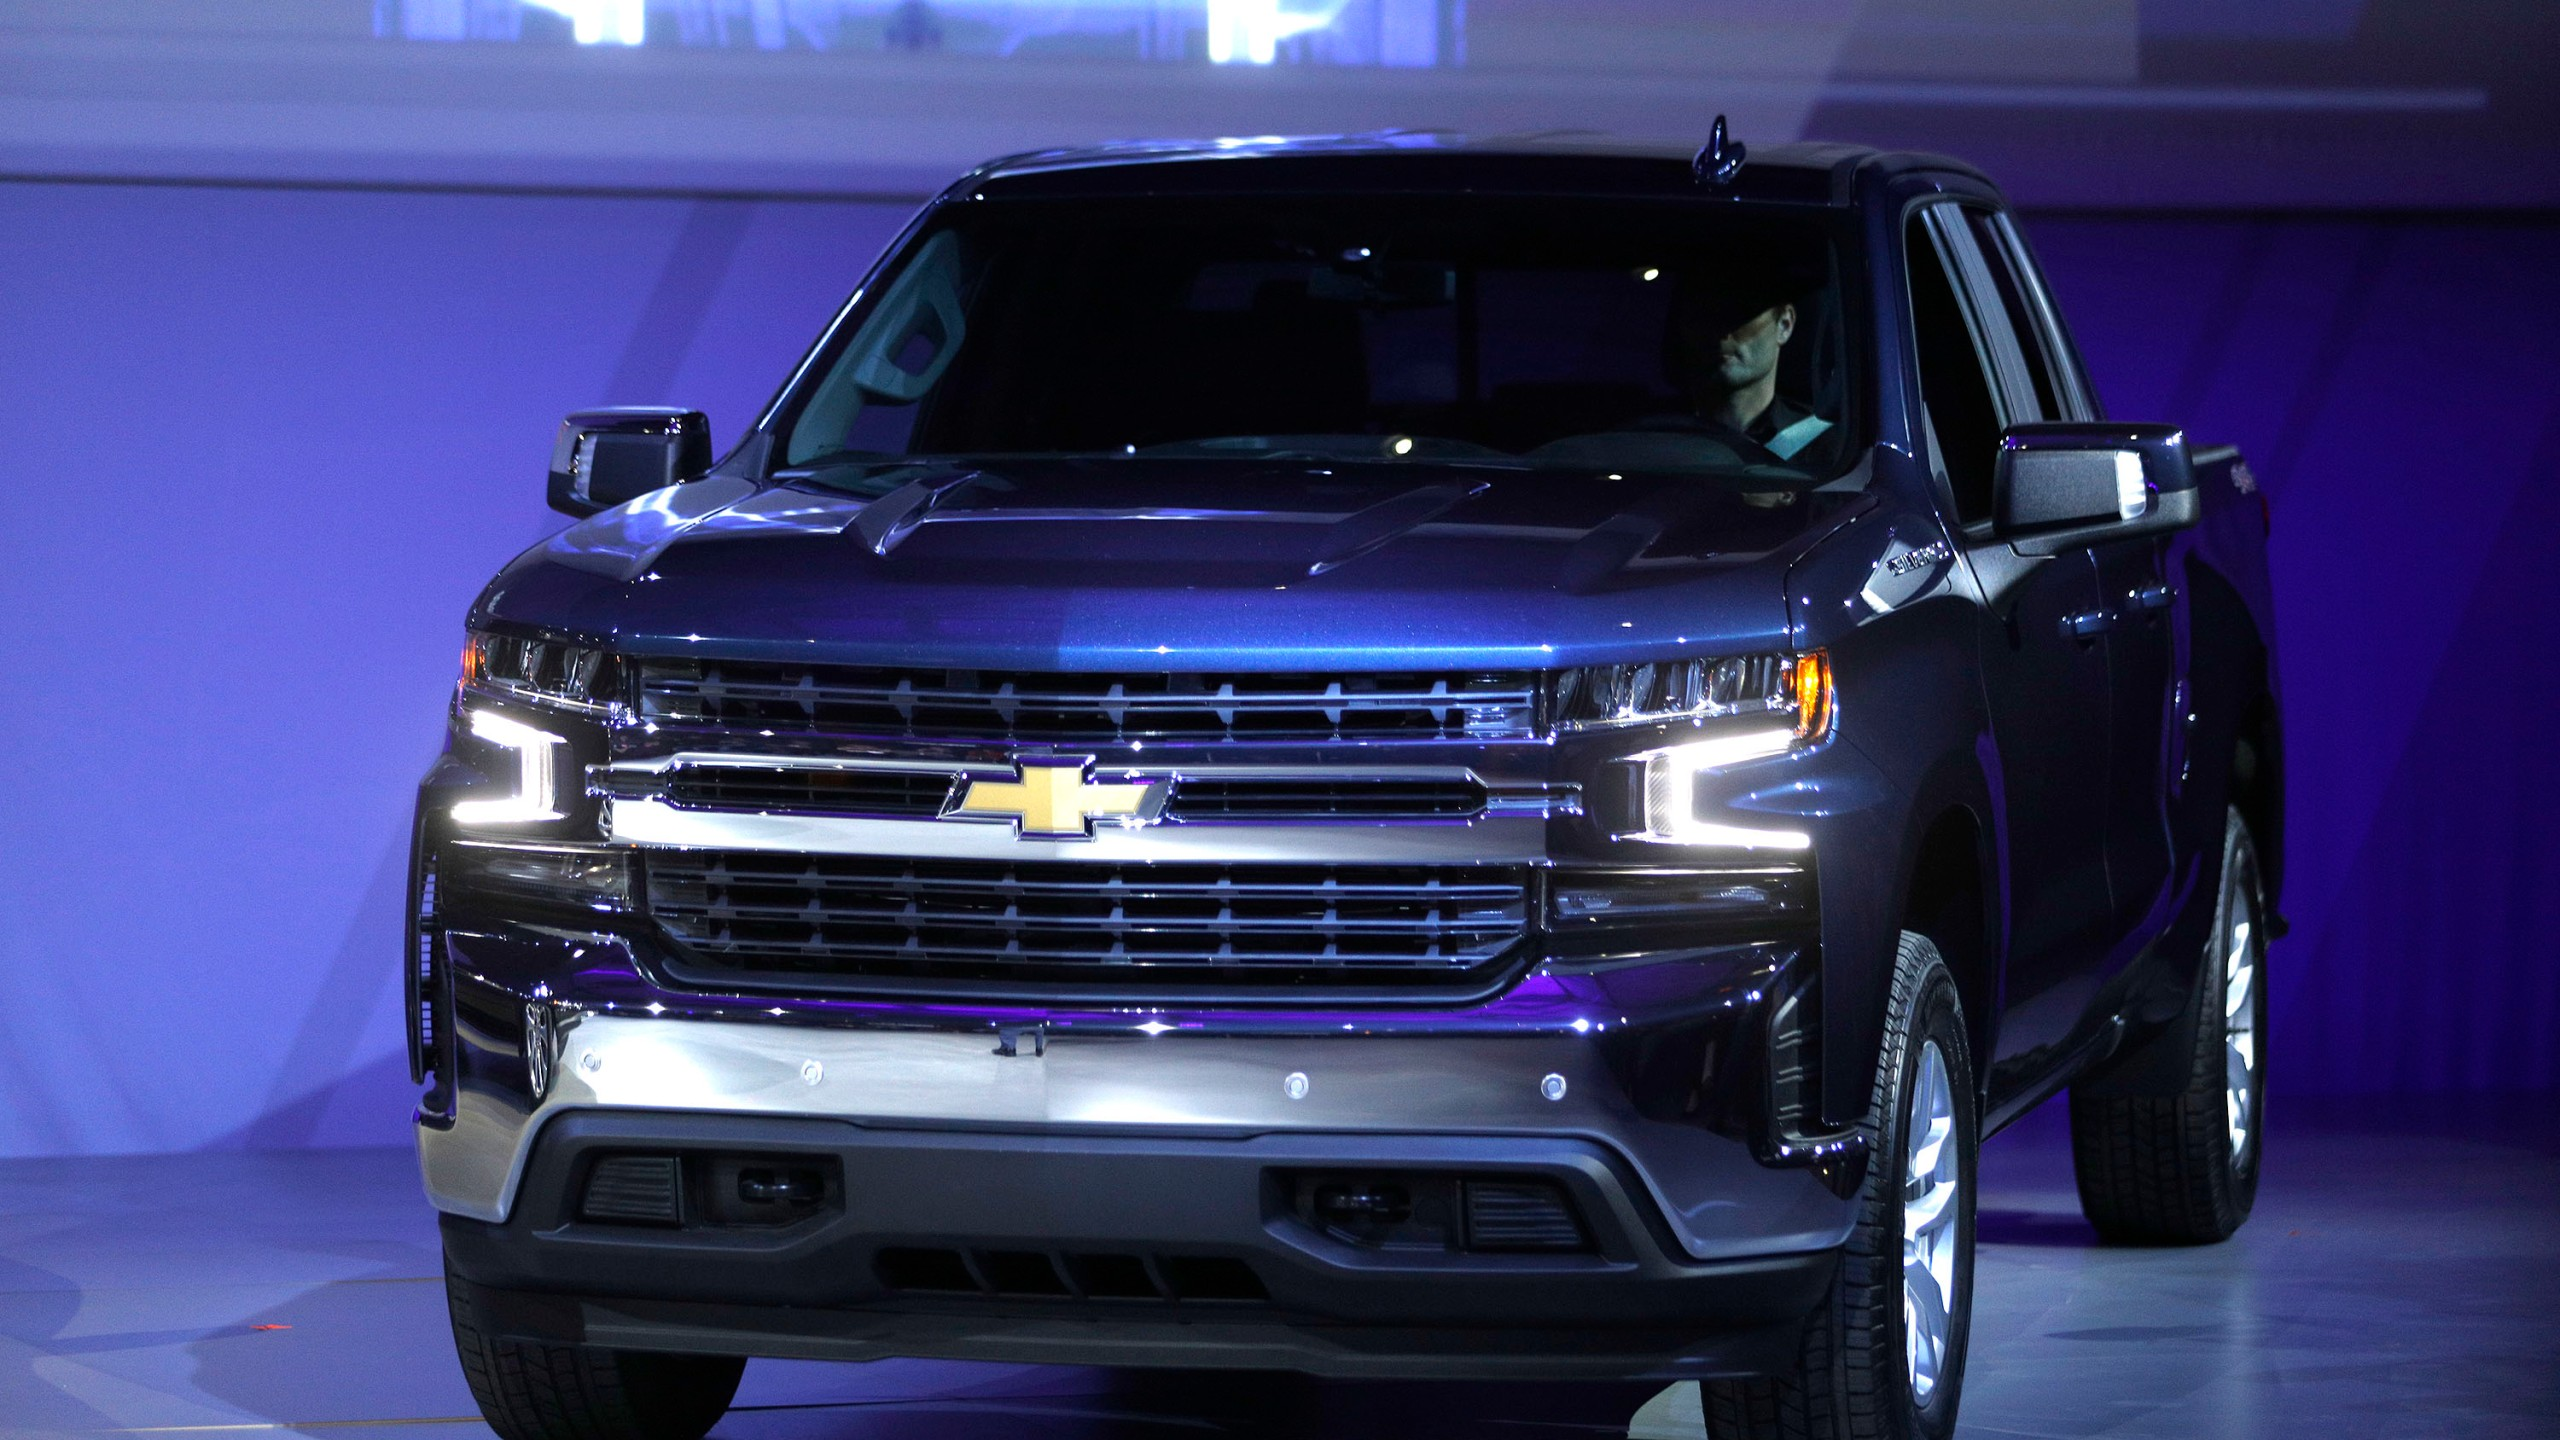 The Chevrolet Silverado 1500 is seen at the 2018 North American International Auto Show on Jan. 13, 2018, in Detroit, Michigan. (Credit: Bill Pugliano/Getty Images)